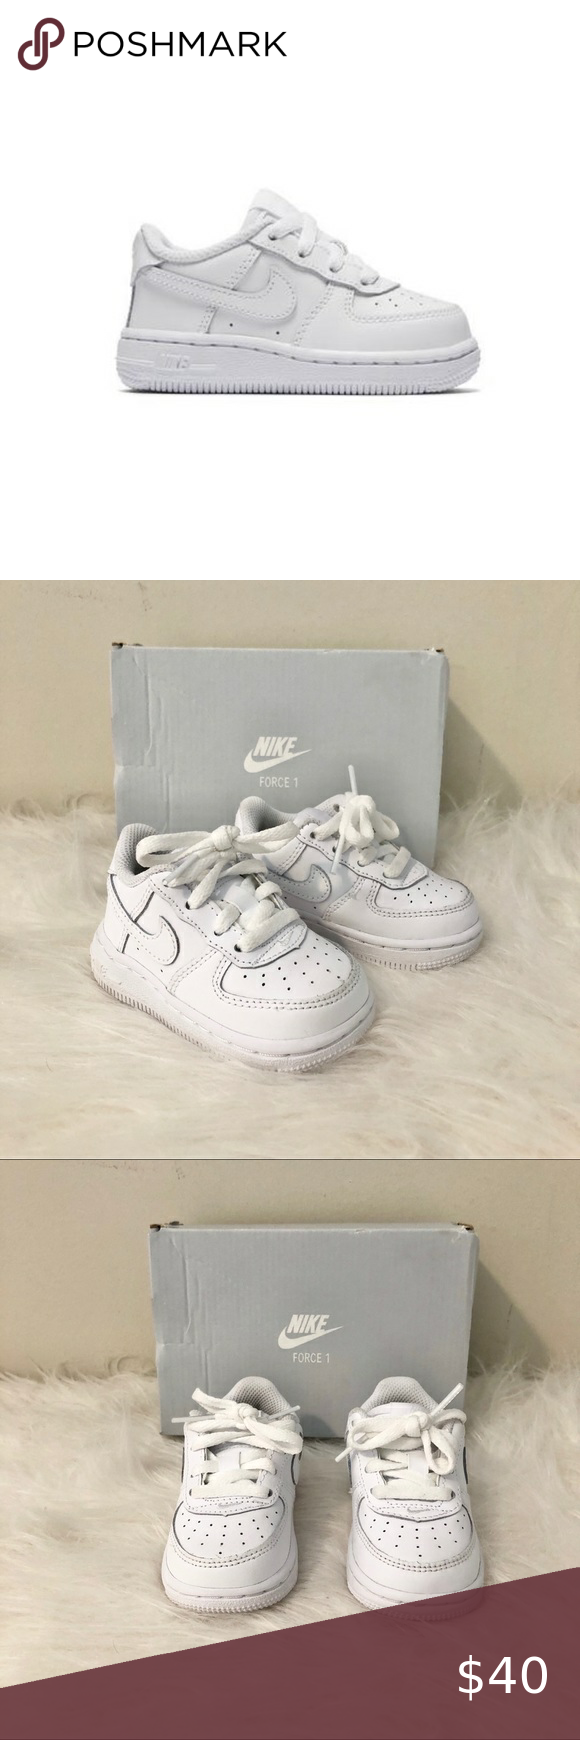 NEW Baby Nike Air Force 1 Size 4 in